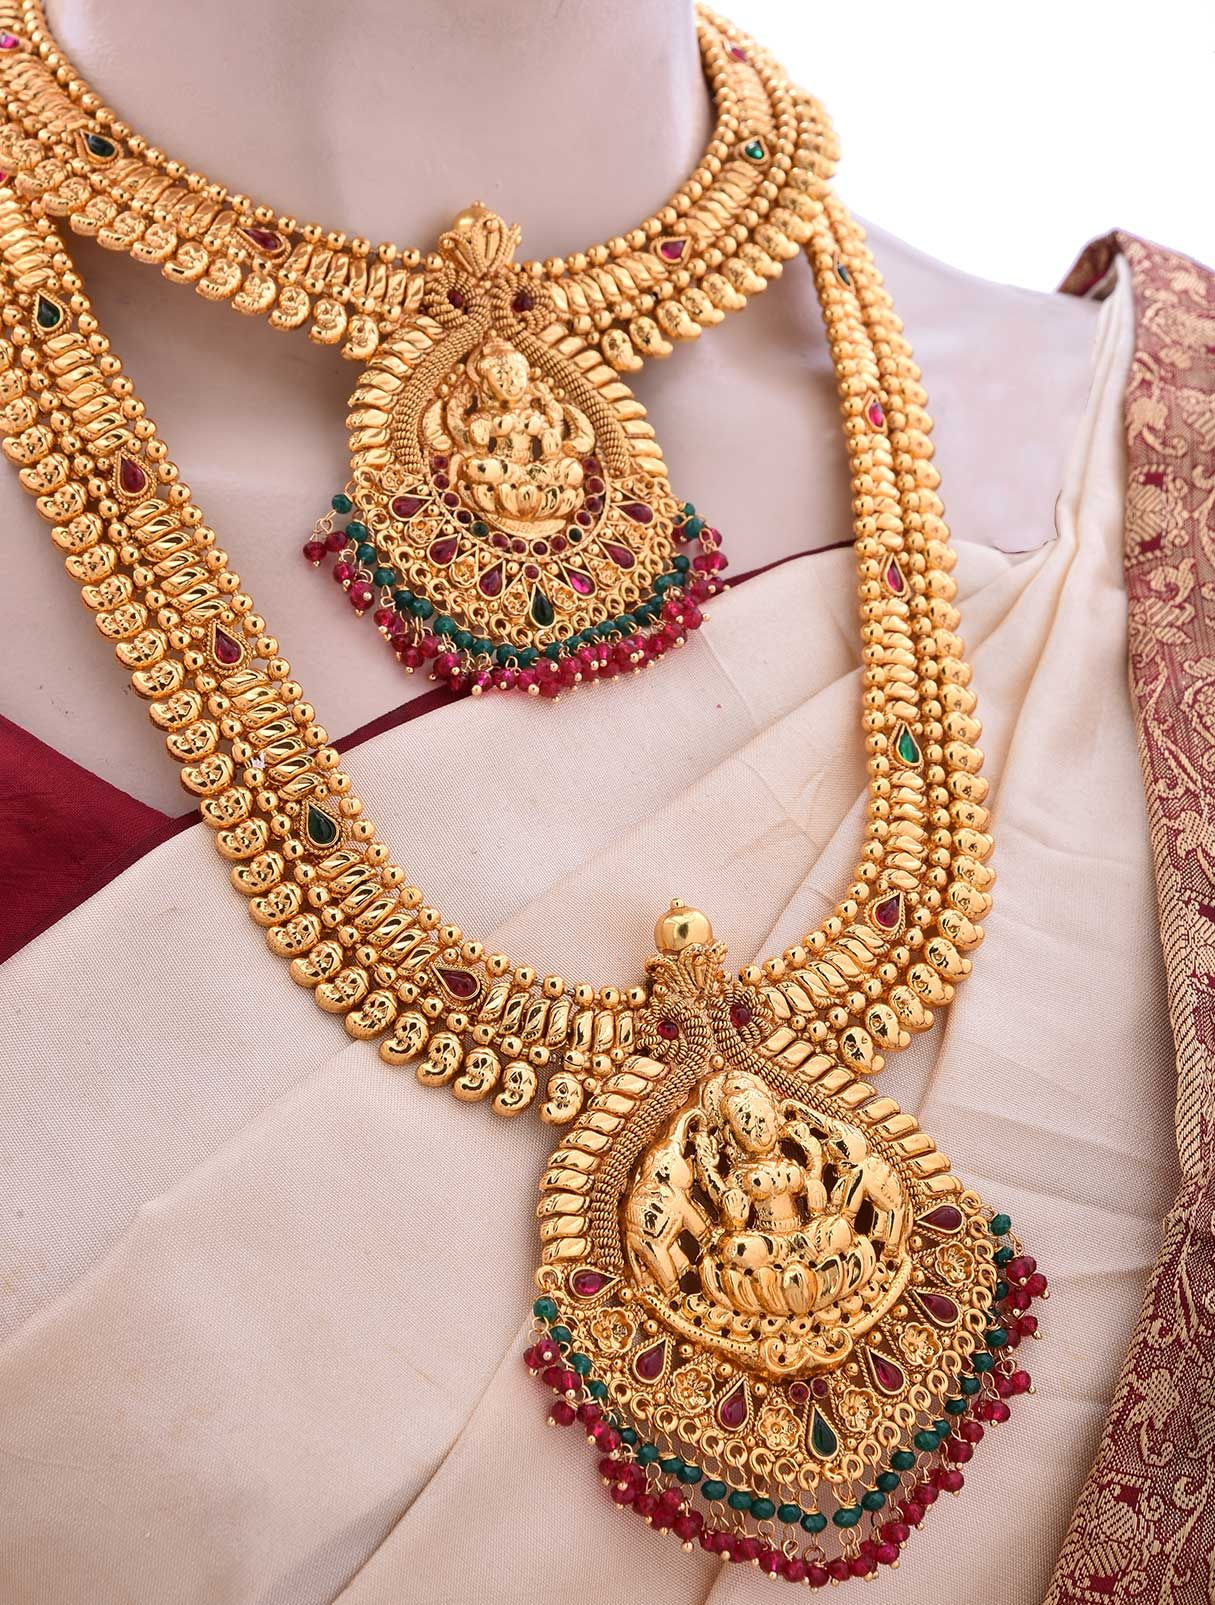 Rent Marriage Bridal Jewellery Set With Pink Kemp Stones Online Free Delivery And Pick Bridal Gold Jewellery Designs Gold Jewelry Fashion Bridal Gold Jewellery